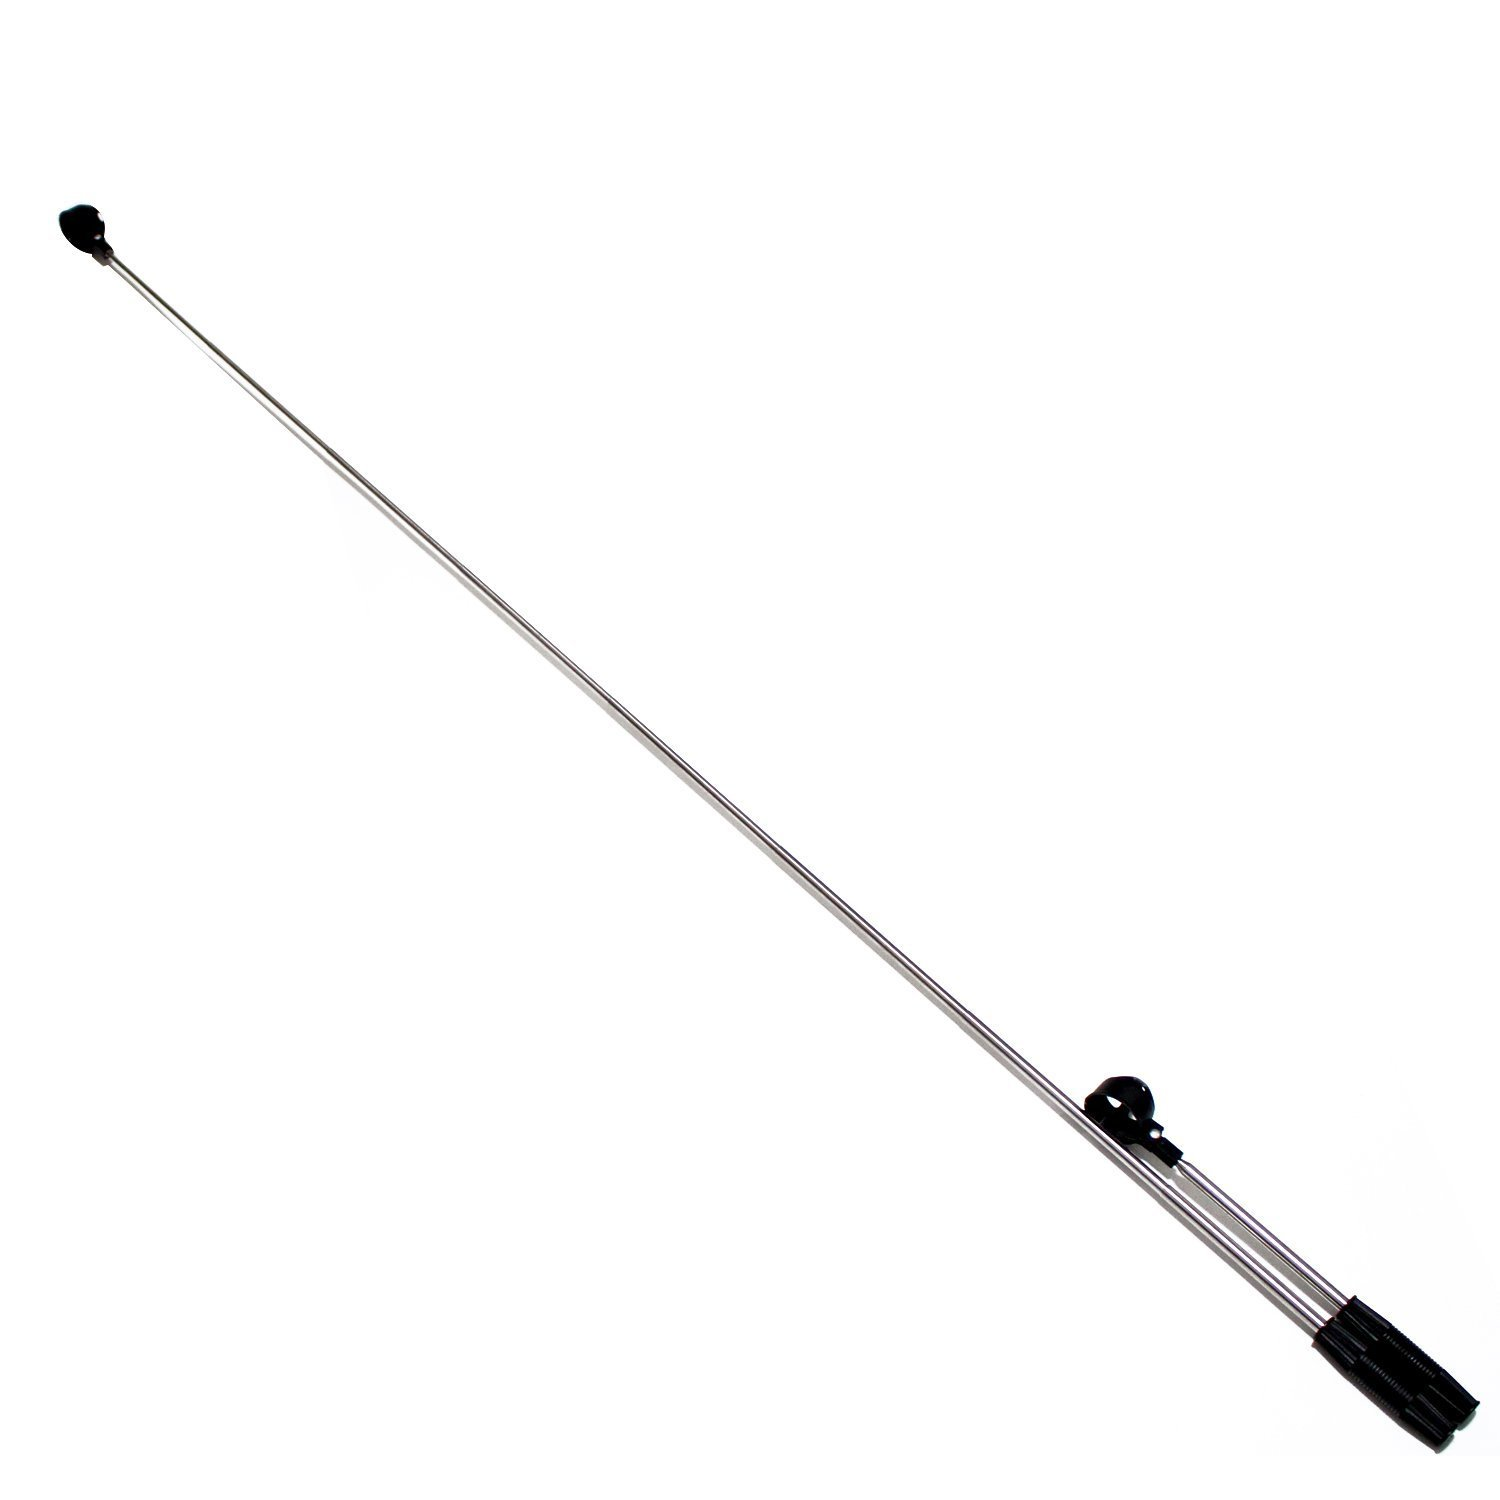 MarketBoss Retractable 15.74''/40cm to 78.74''in/2m Golf Ball Pickup Retriever Pick up Stainless Steel Telescopic Scoop Pick up by MarketBoss (Image #4)